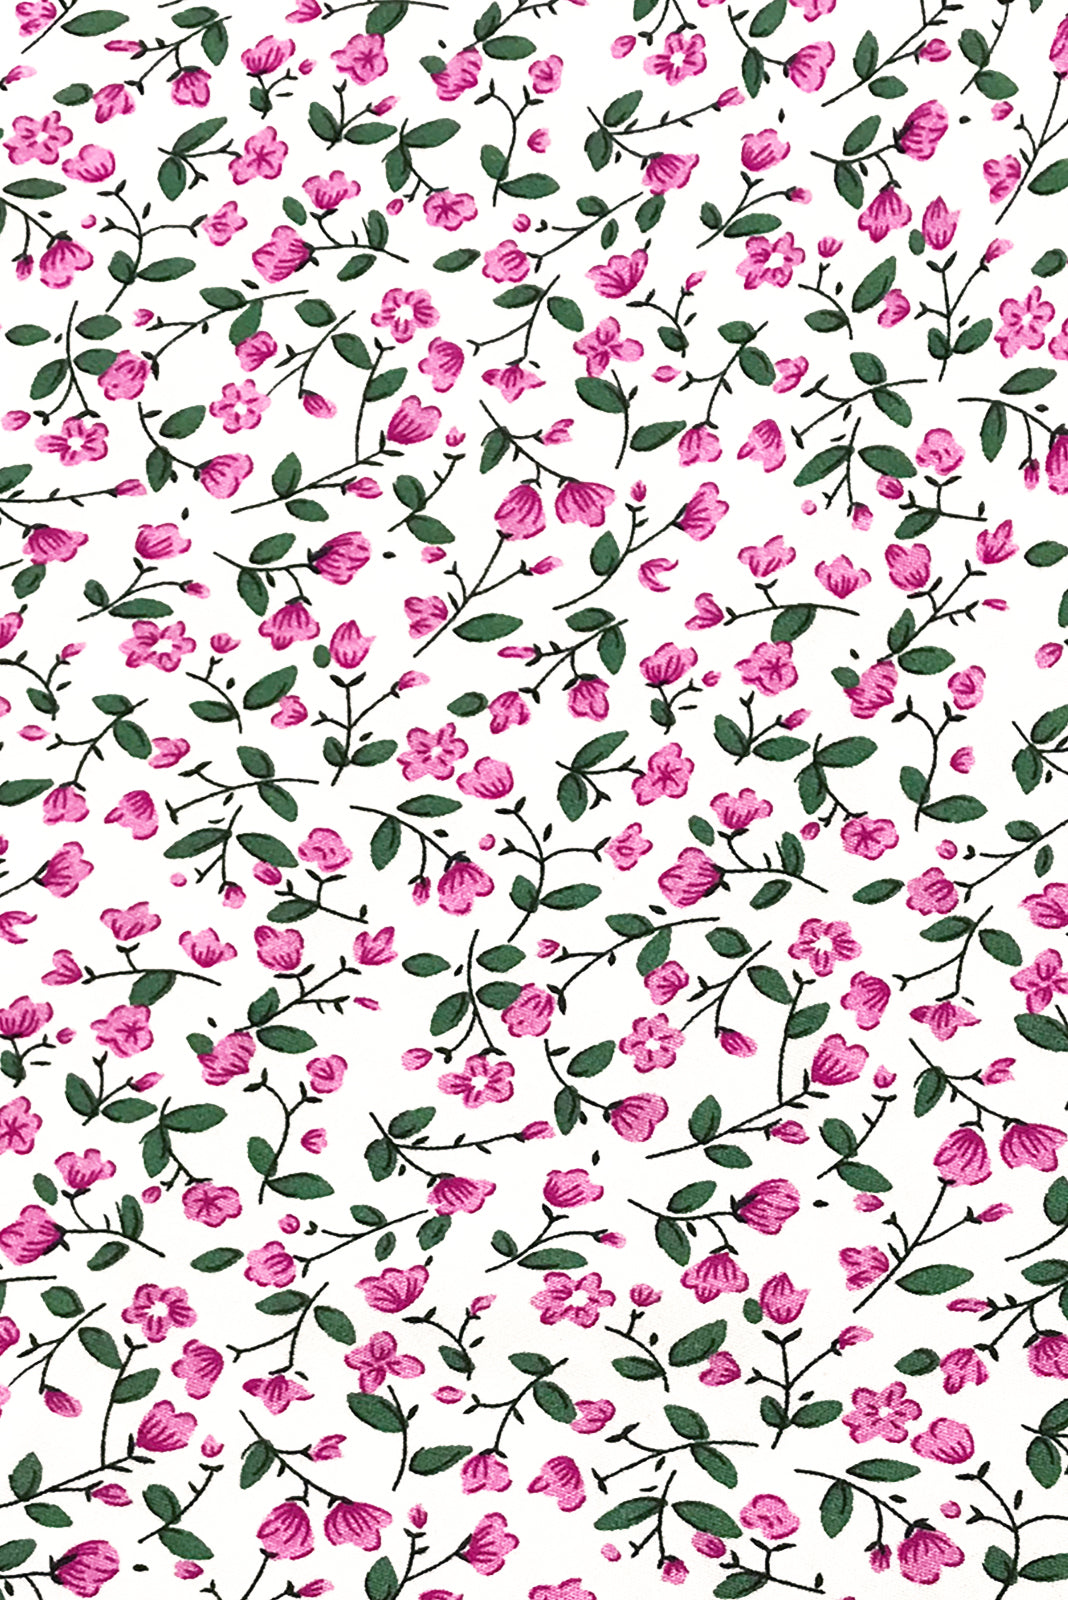 Fabric Swatch of Primrose Portia Pink Dress comes in woven 100% rayon in white base with mini pink and green floral pattern.